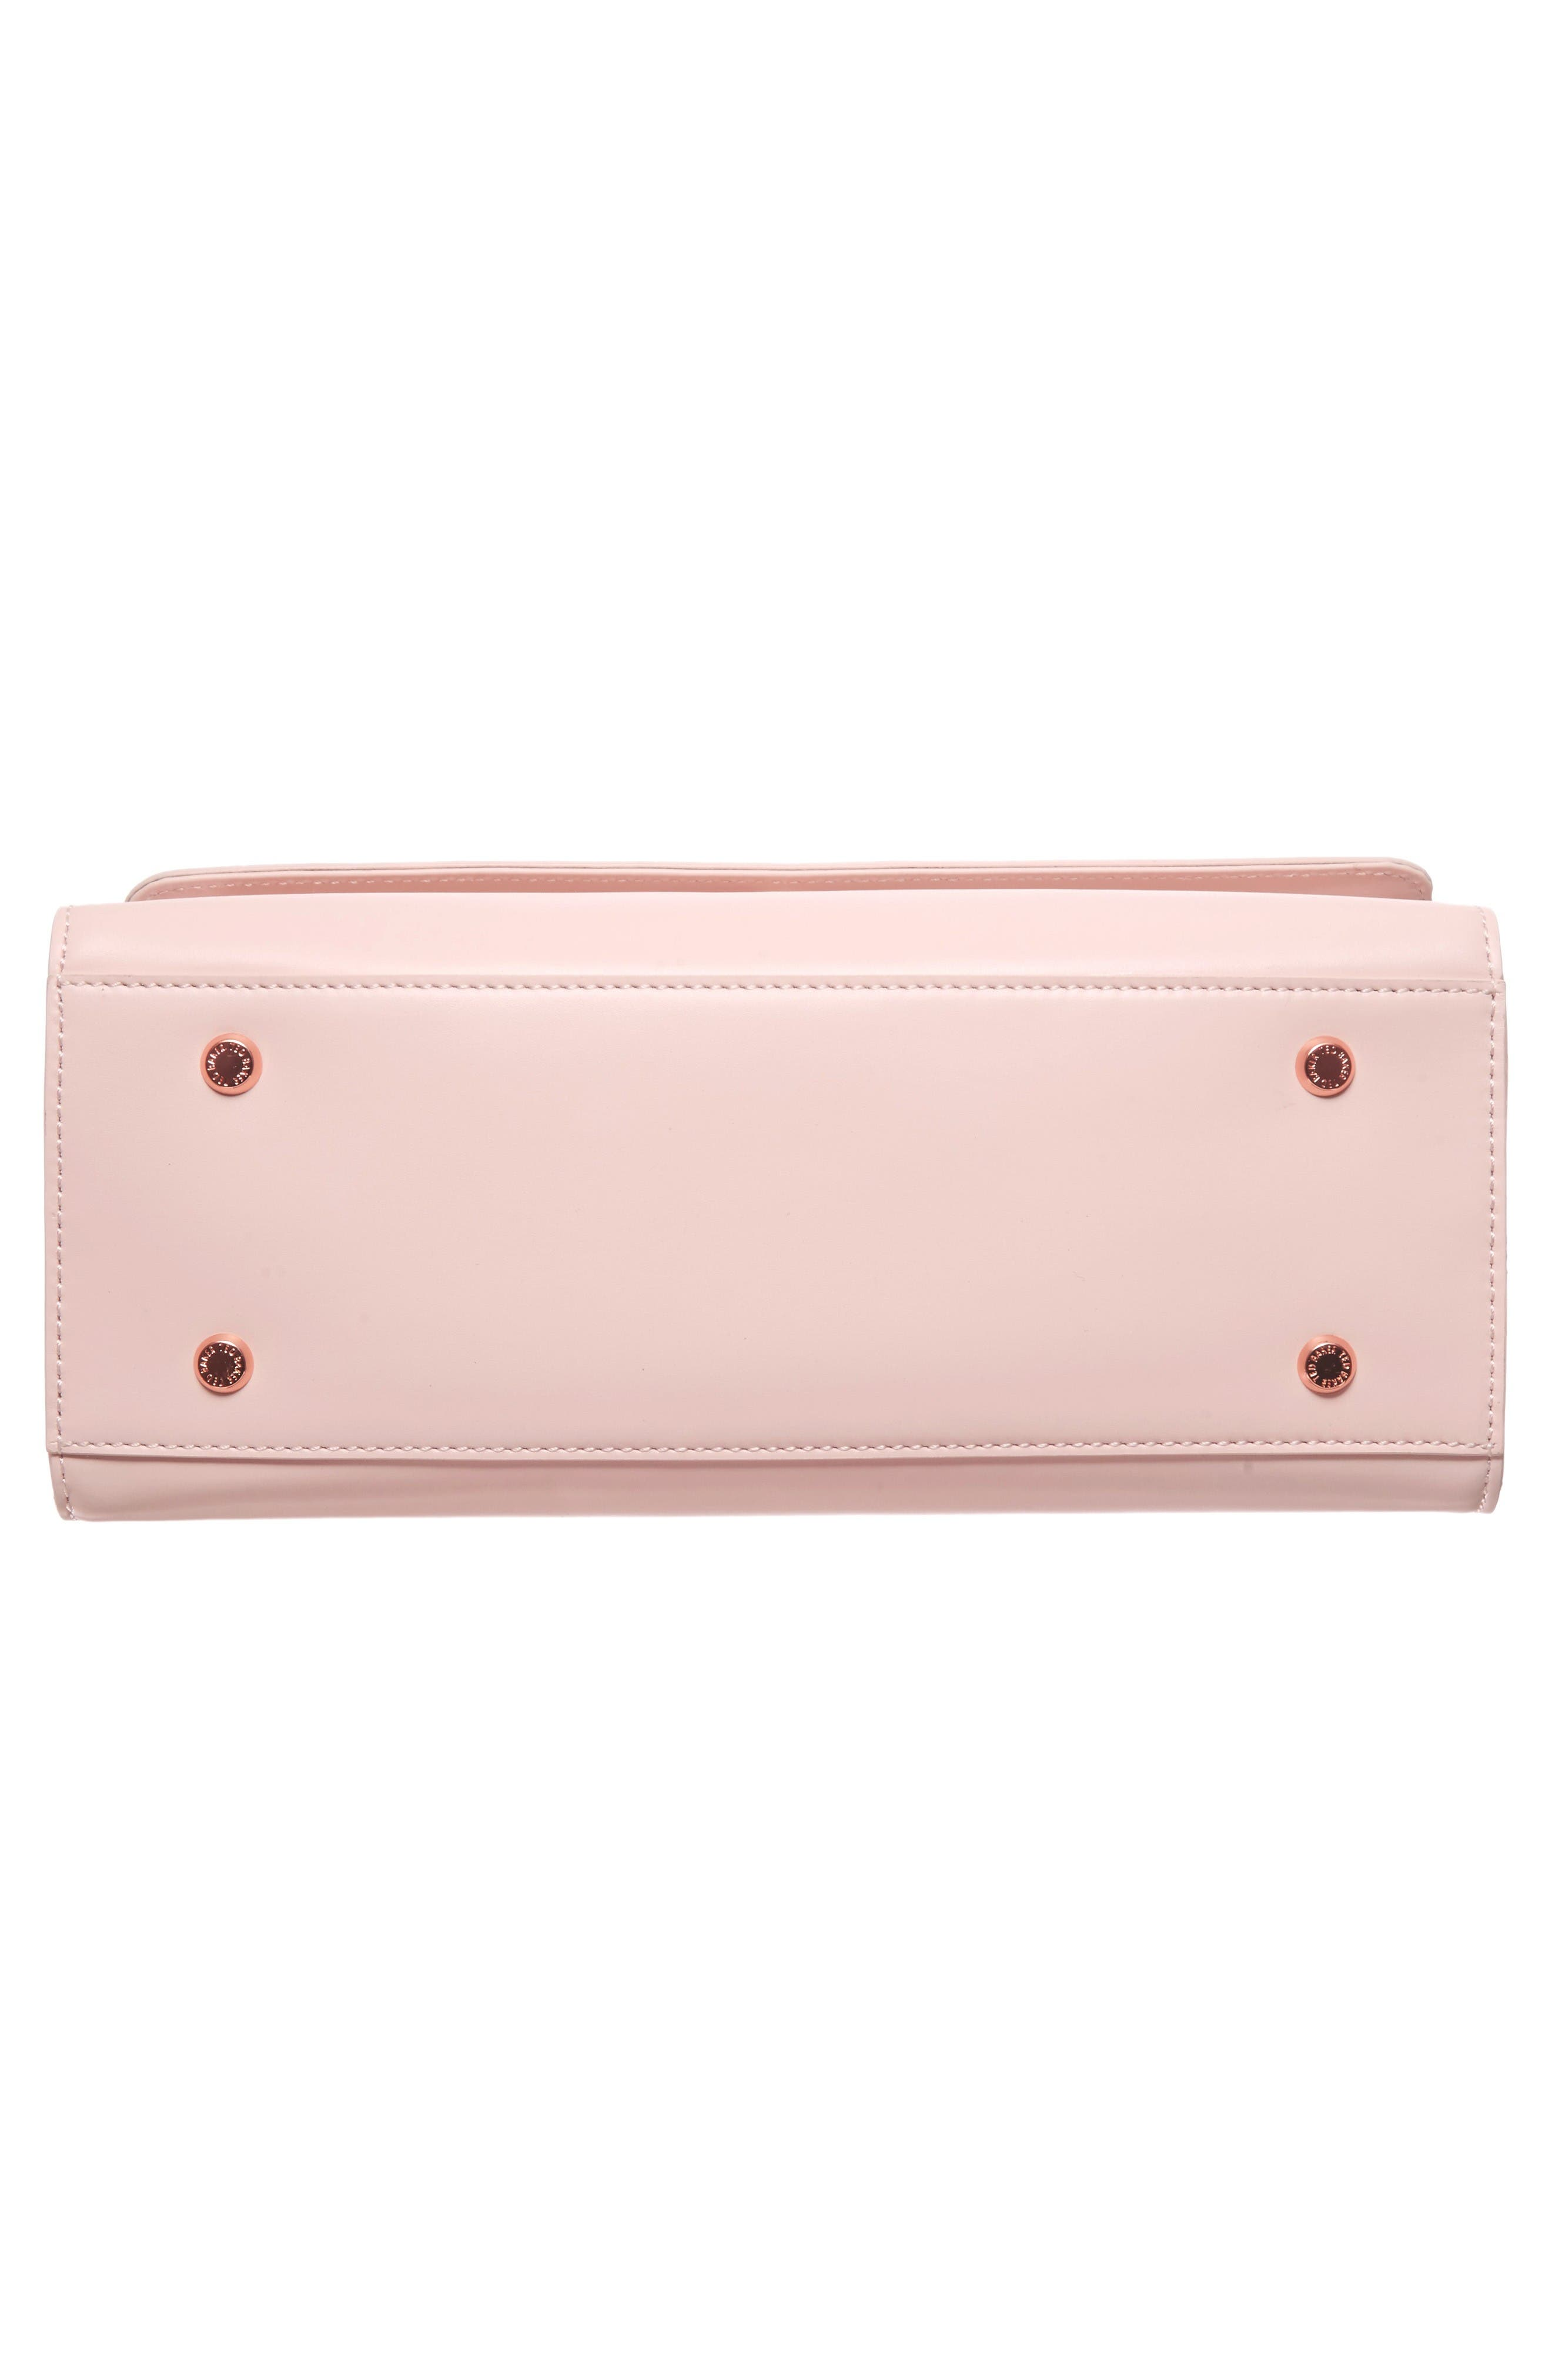 Croc Embossed Leather Satchel,                             Alternate thumbnail 6, color,                             Baby Pink